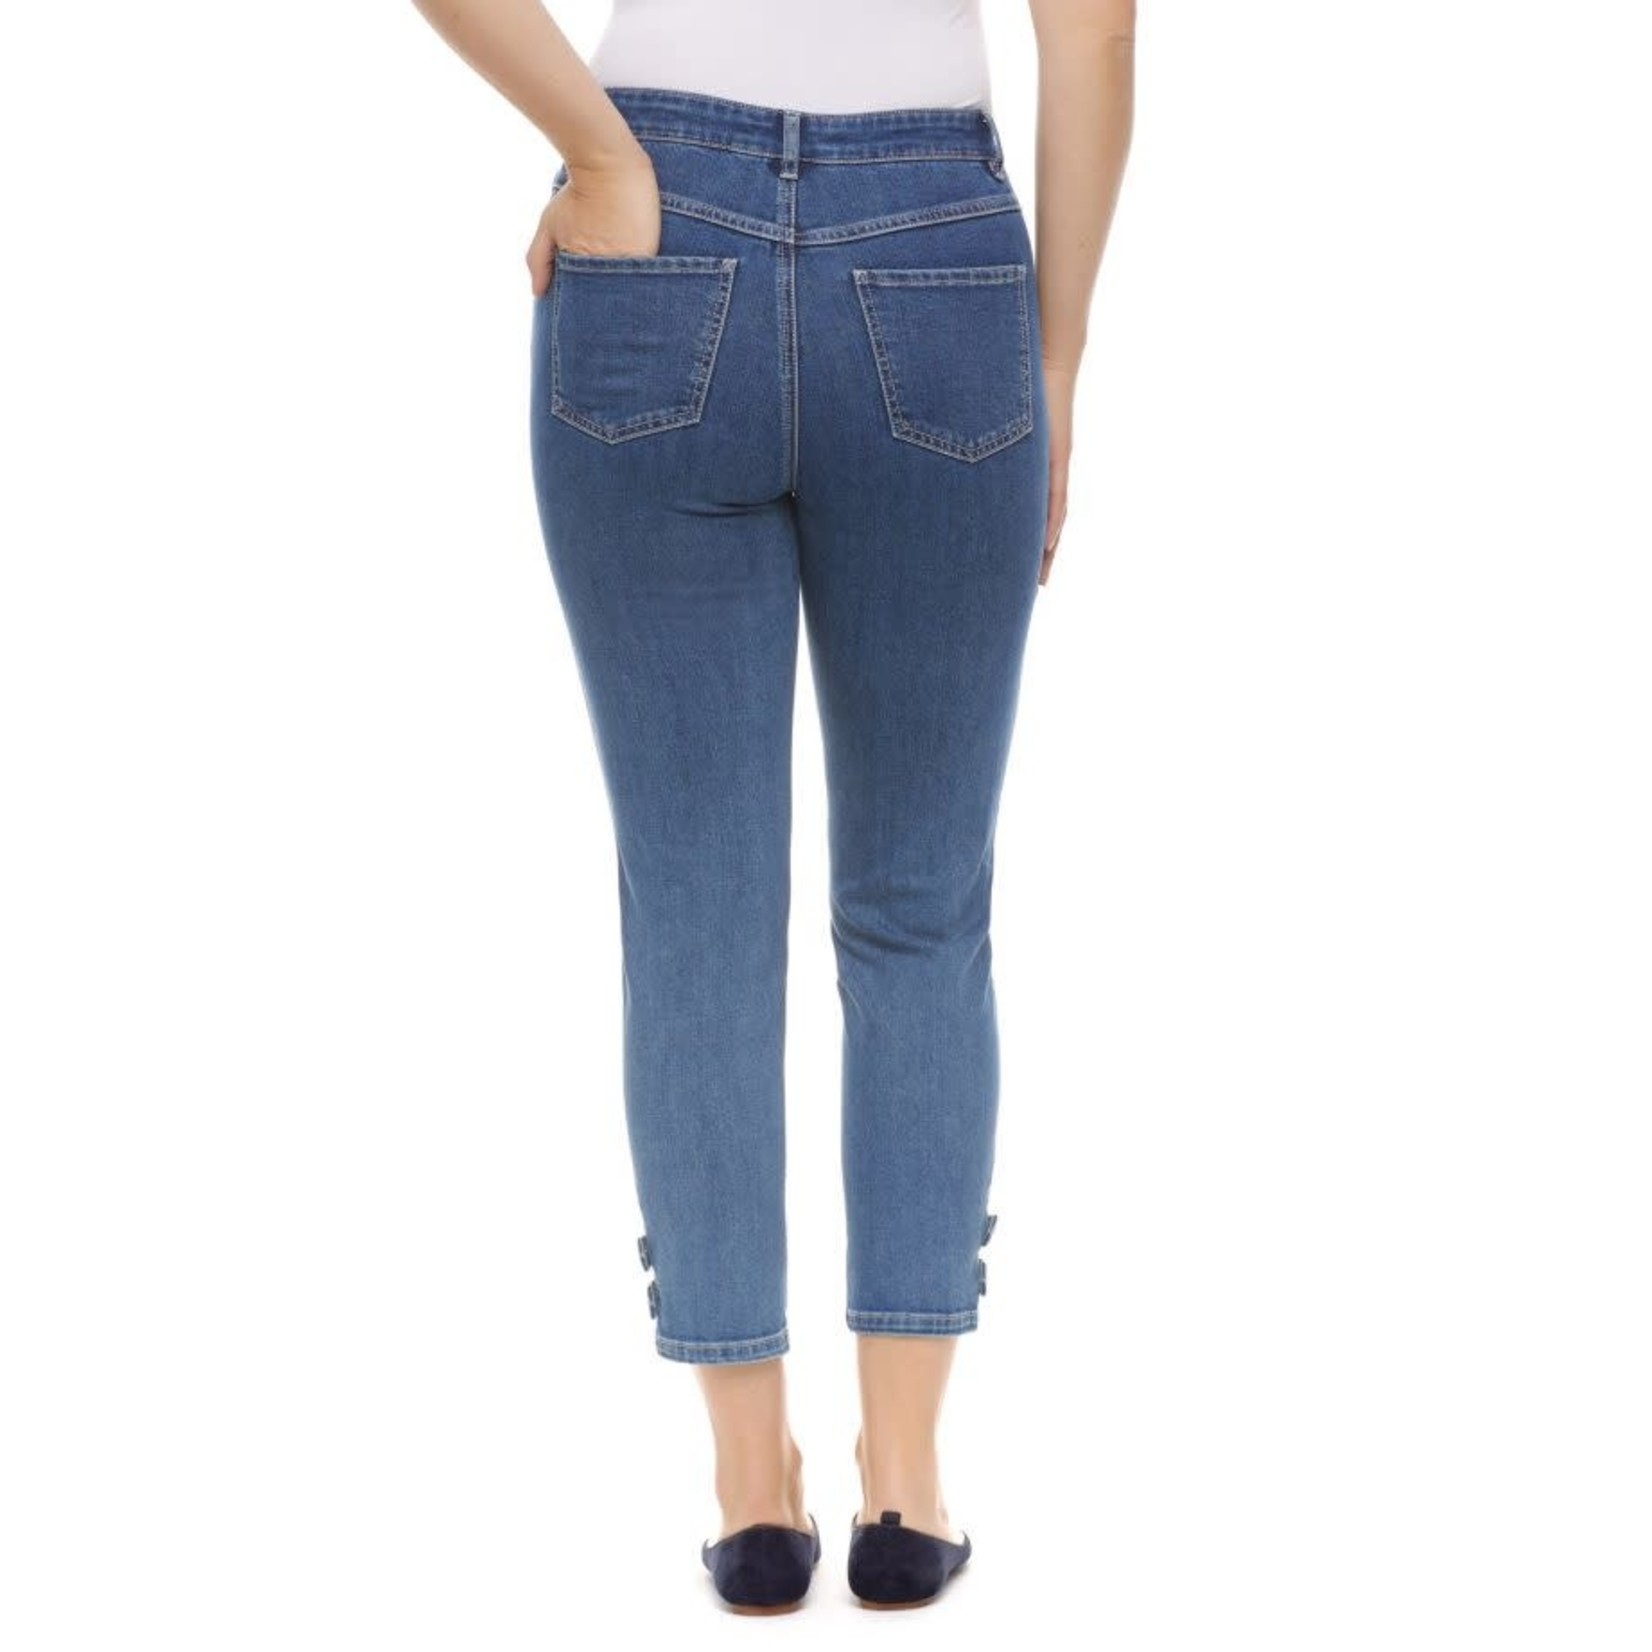 Suzanne Slim Crop Jeans w/ 2 Ankle Tab Snaps